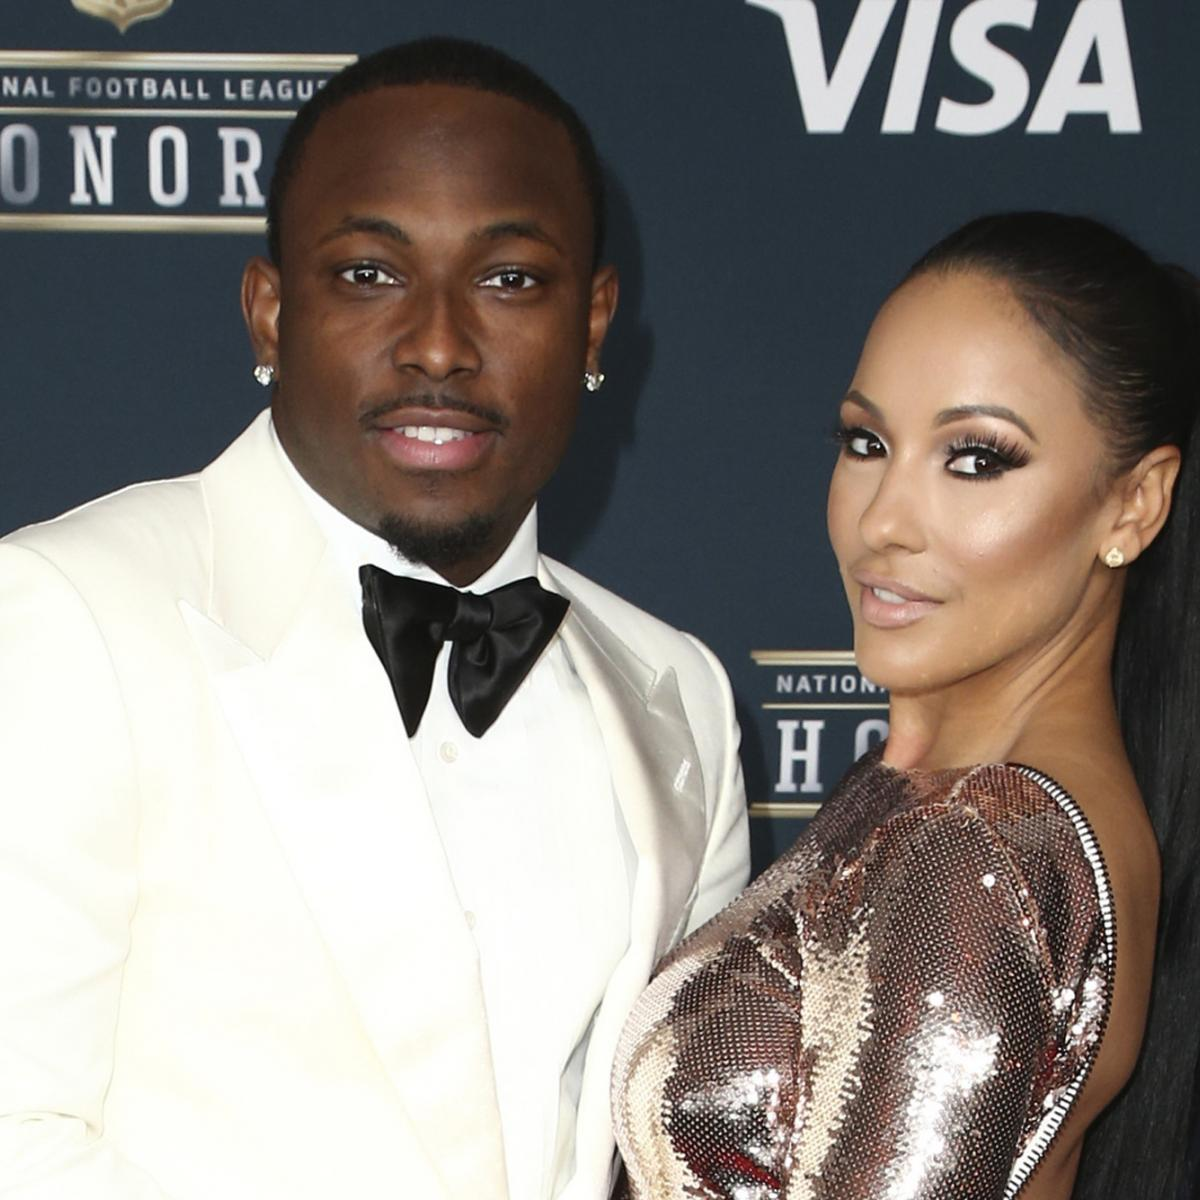 LeSean McCoy's Ex-Girlfriend Files Photos of Injuries from Alleged Home Invasion